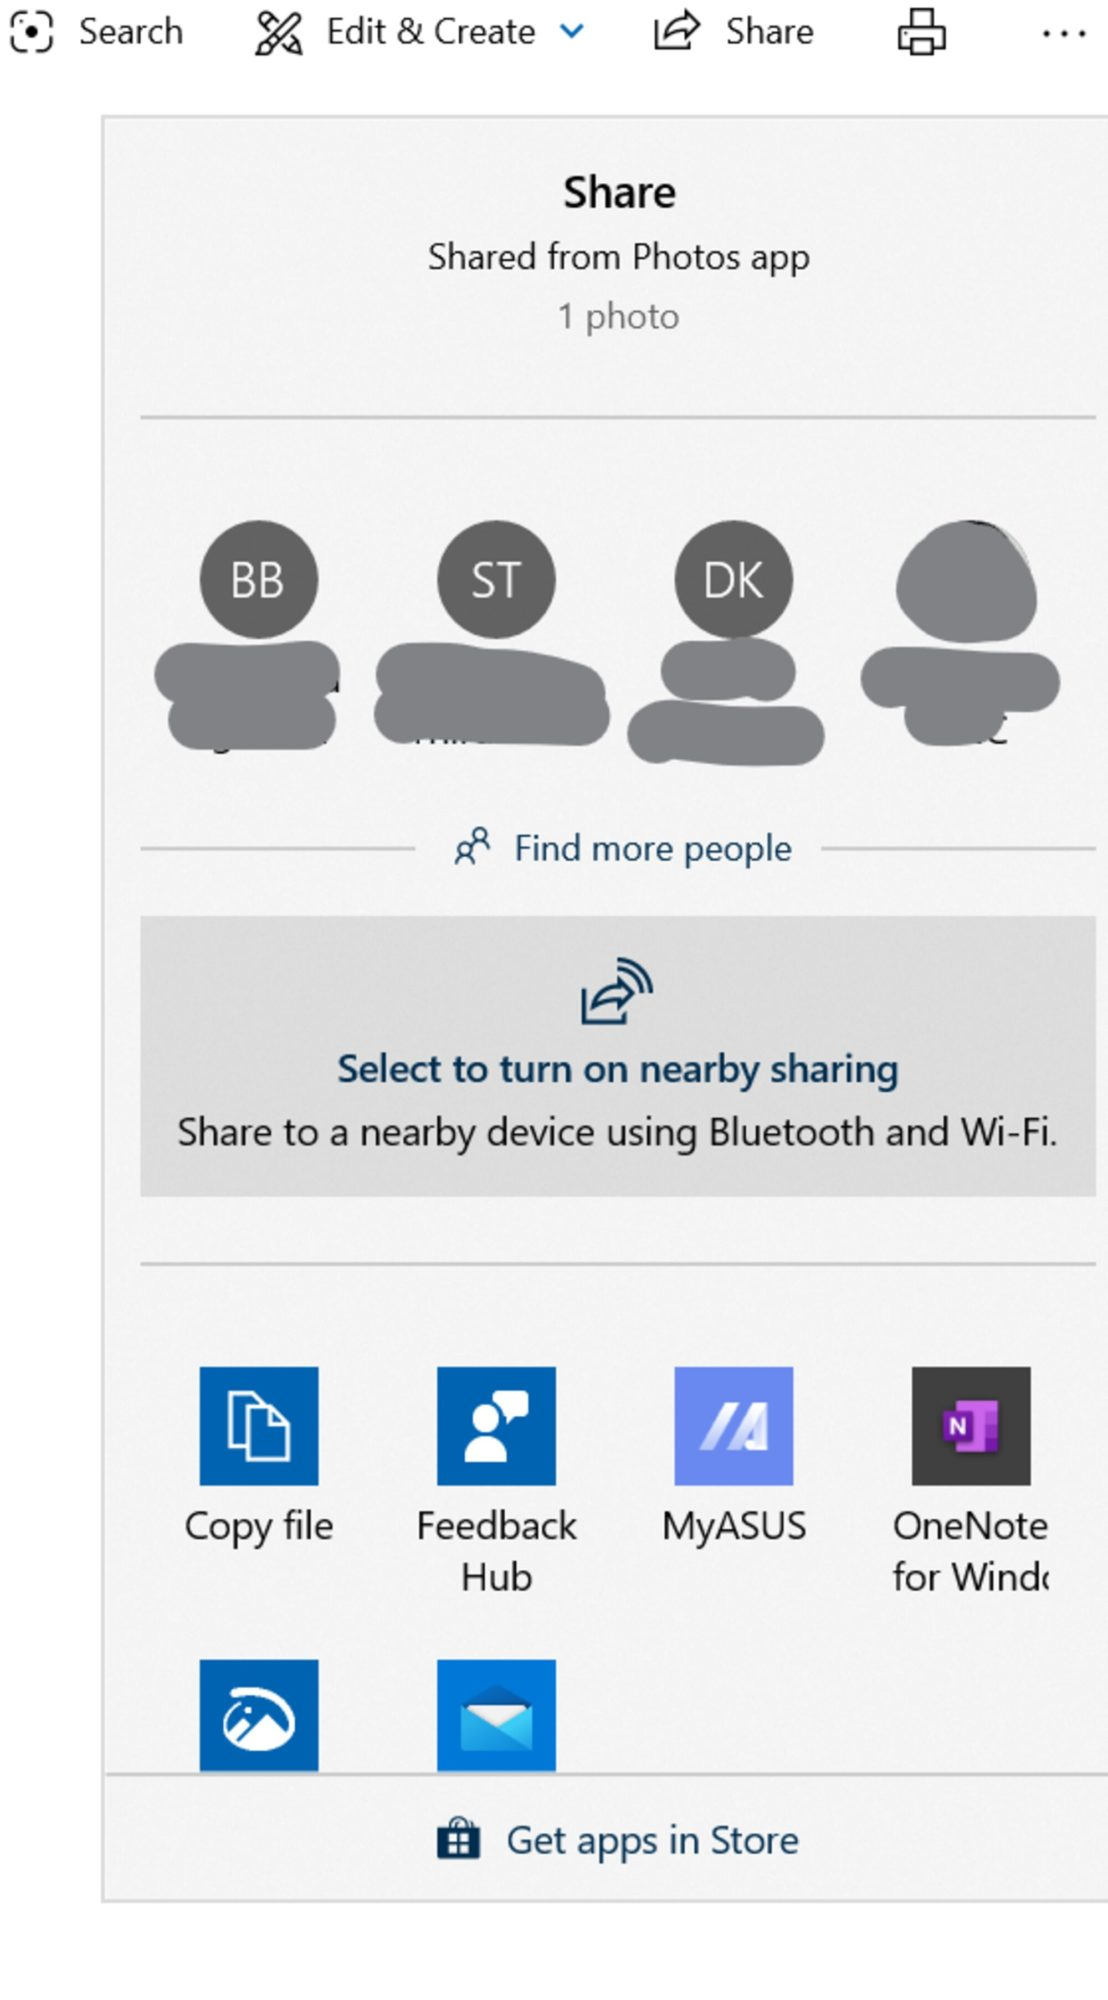 Windows 10 does have a Share Sheet in a few built-in apps like Photos and even in the File Explorer (hard to find)